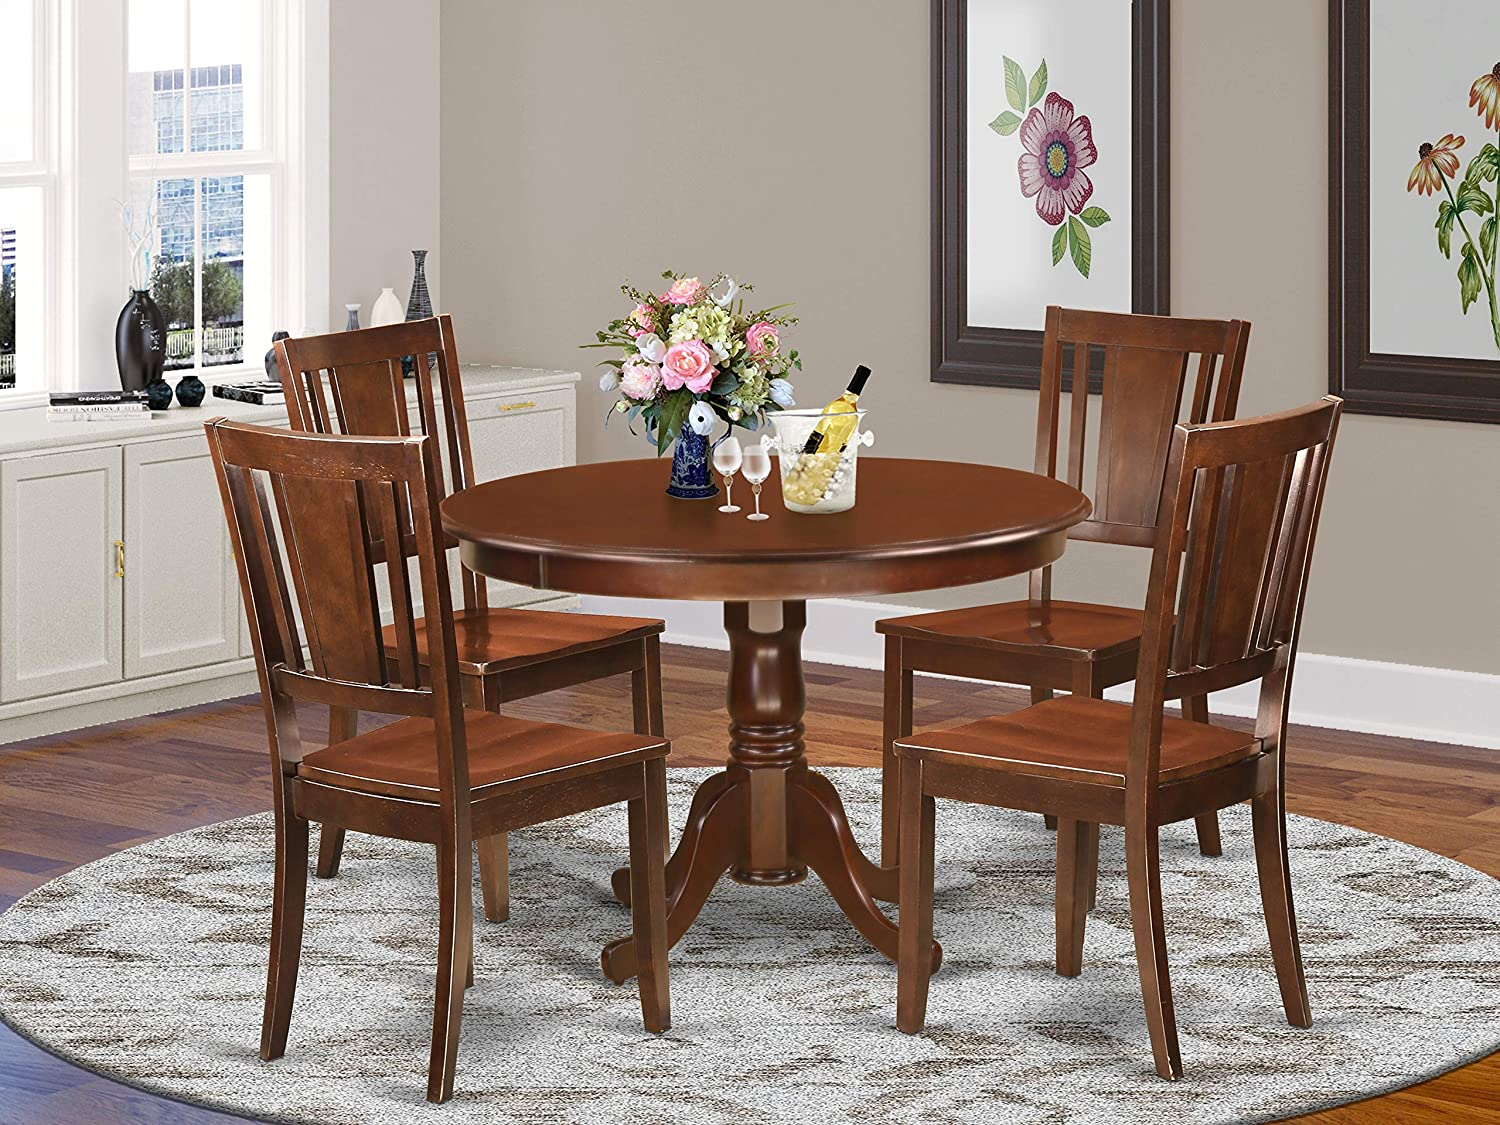 East West Furniture 9 Pc Dining Room Set Included a Round Kitchen Dining  Table and 9 Wood dining Chairs   Solid Wood Dining Chairs Seat & Panel Back    ...